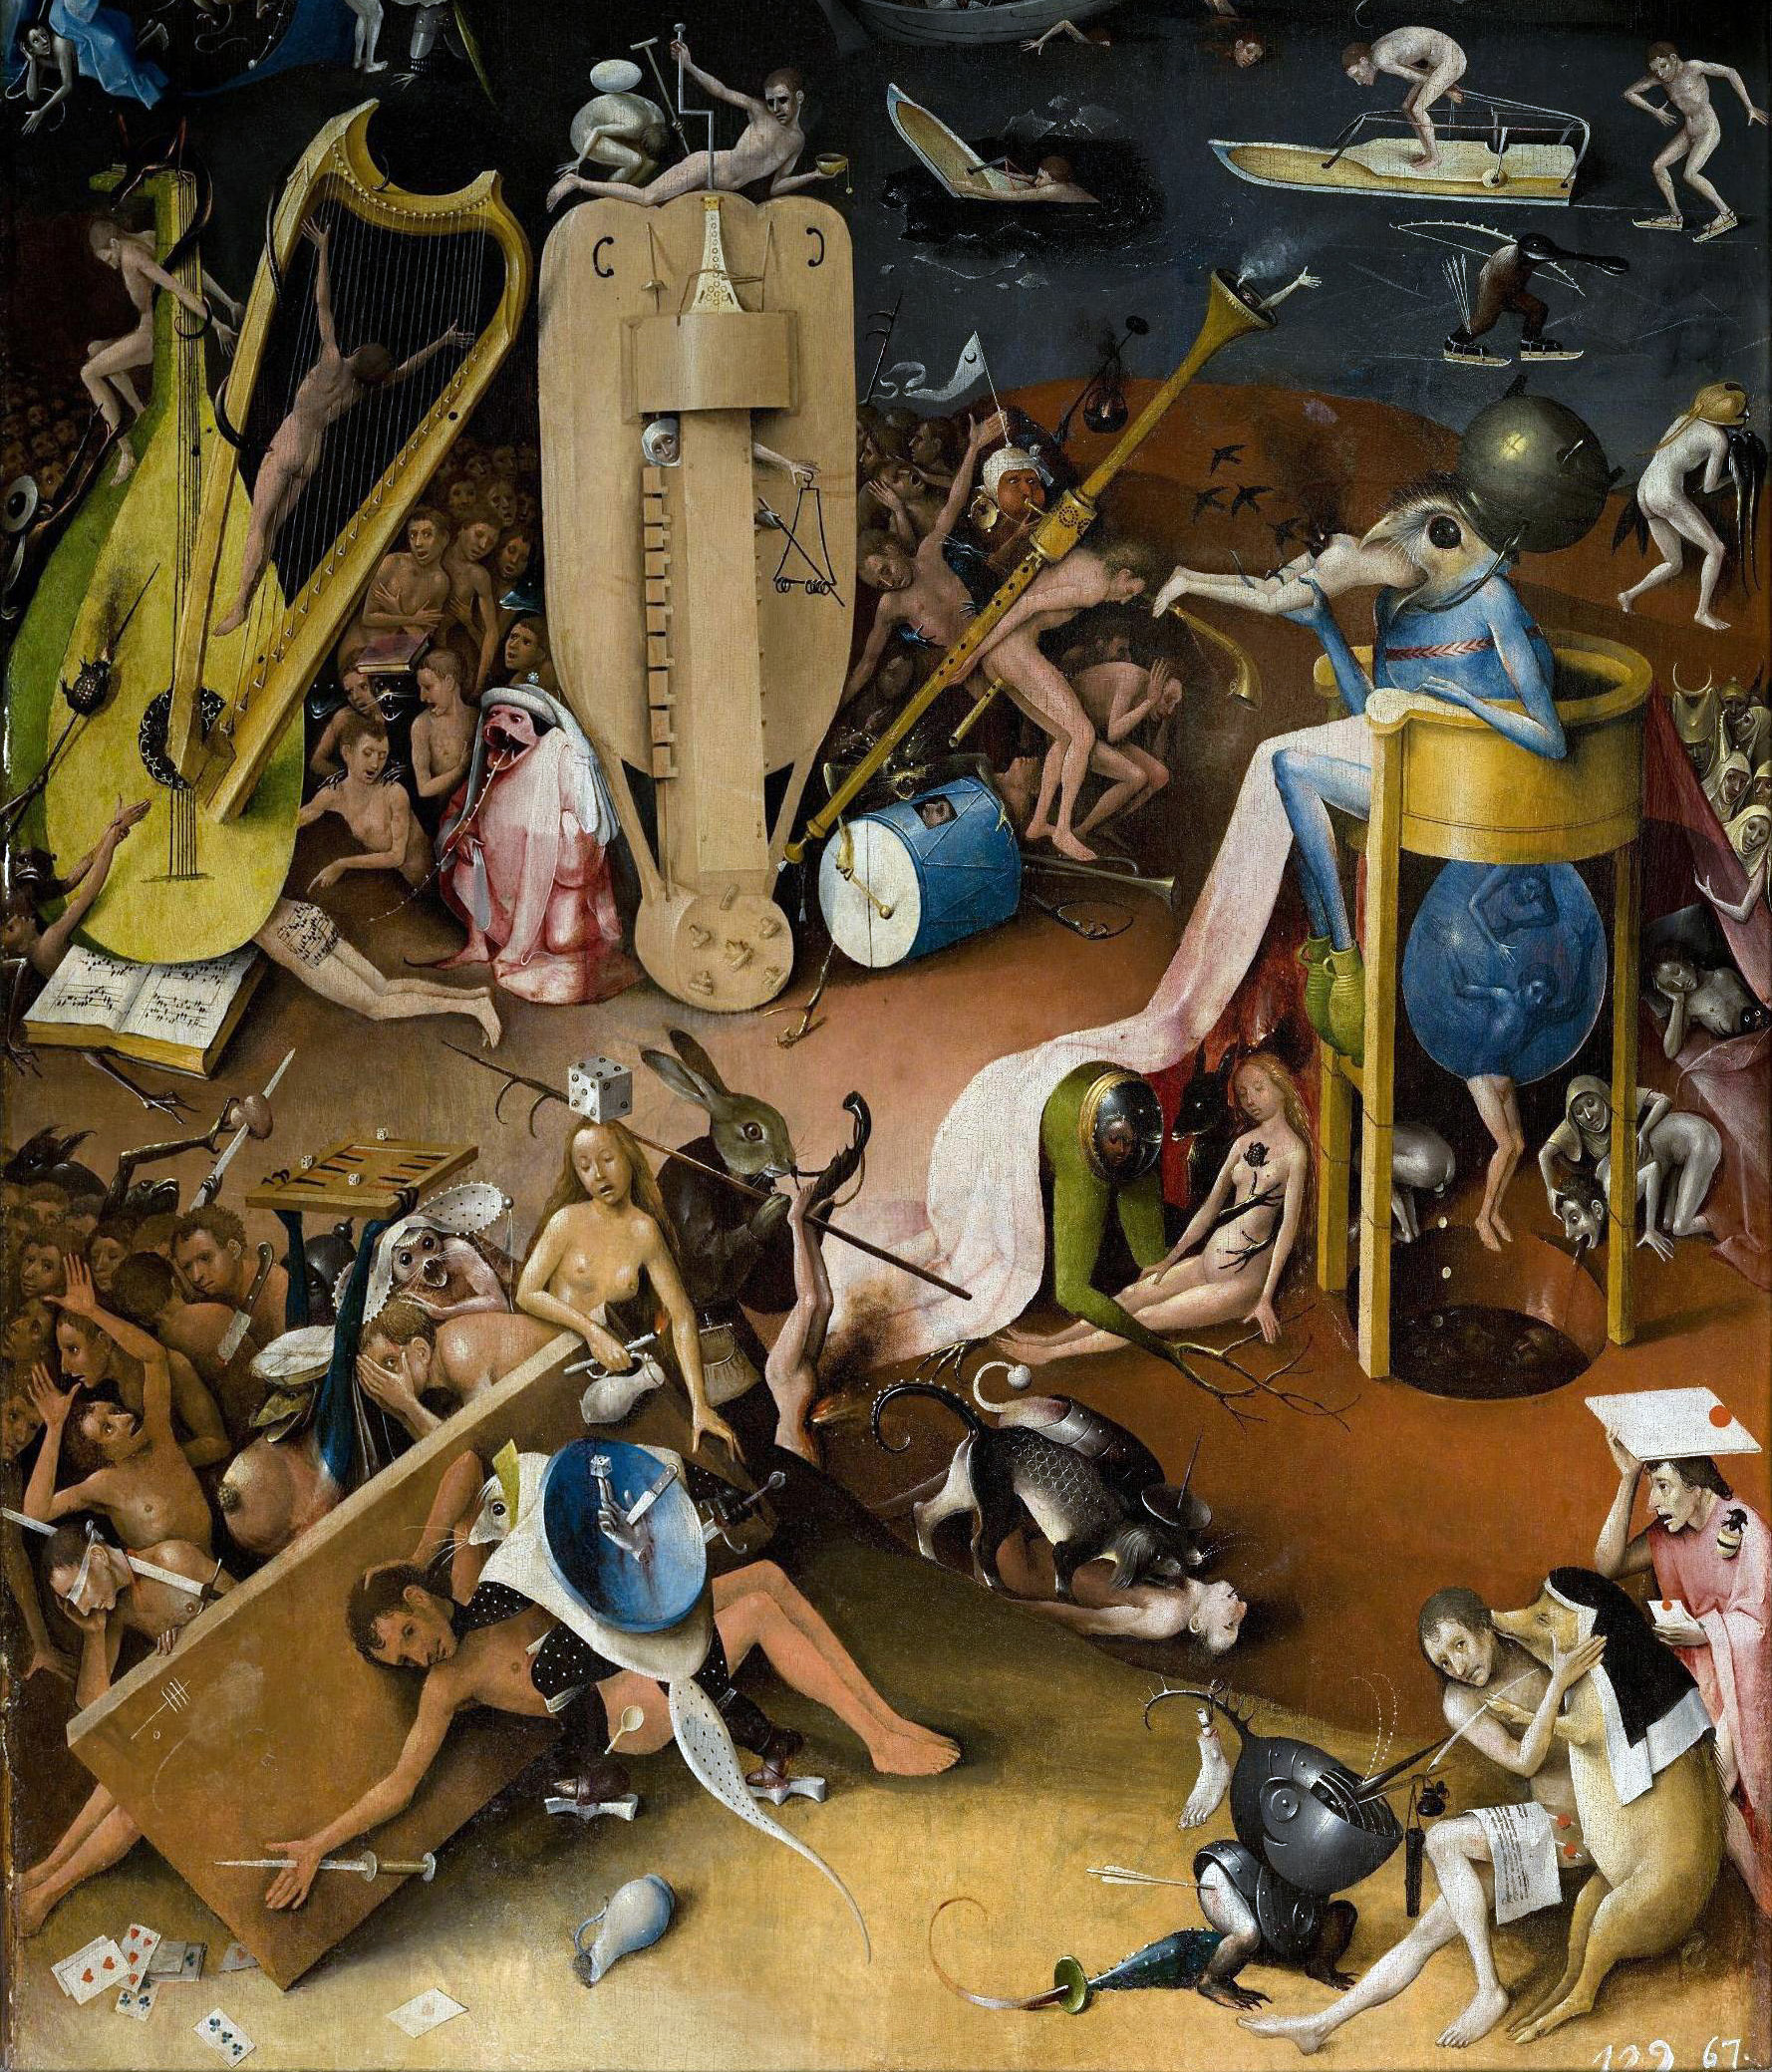 Hieronymus Bosch: detail from The Garden of Earthly Delights